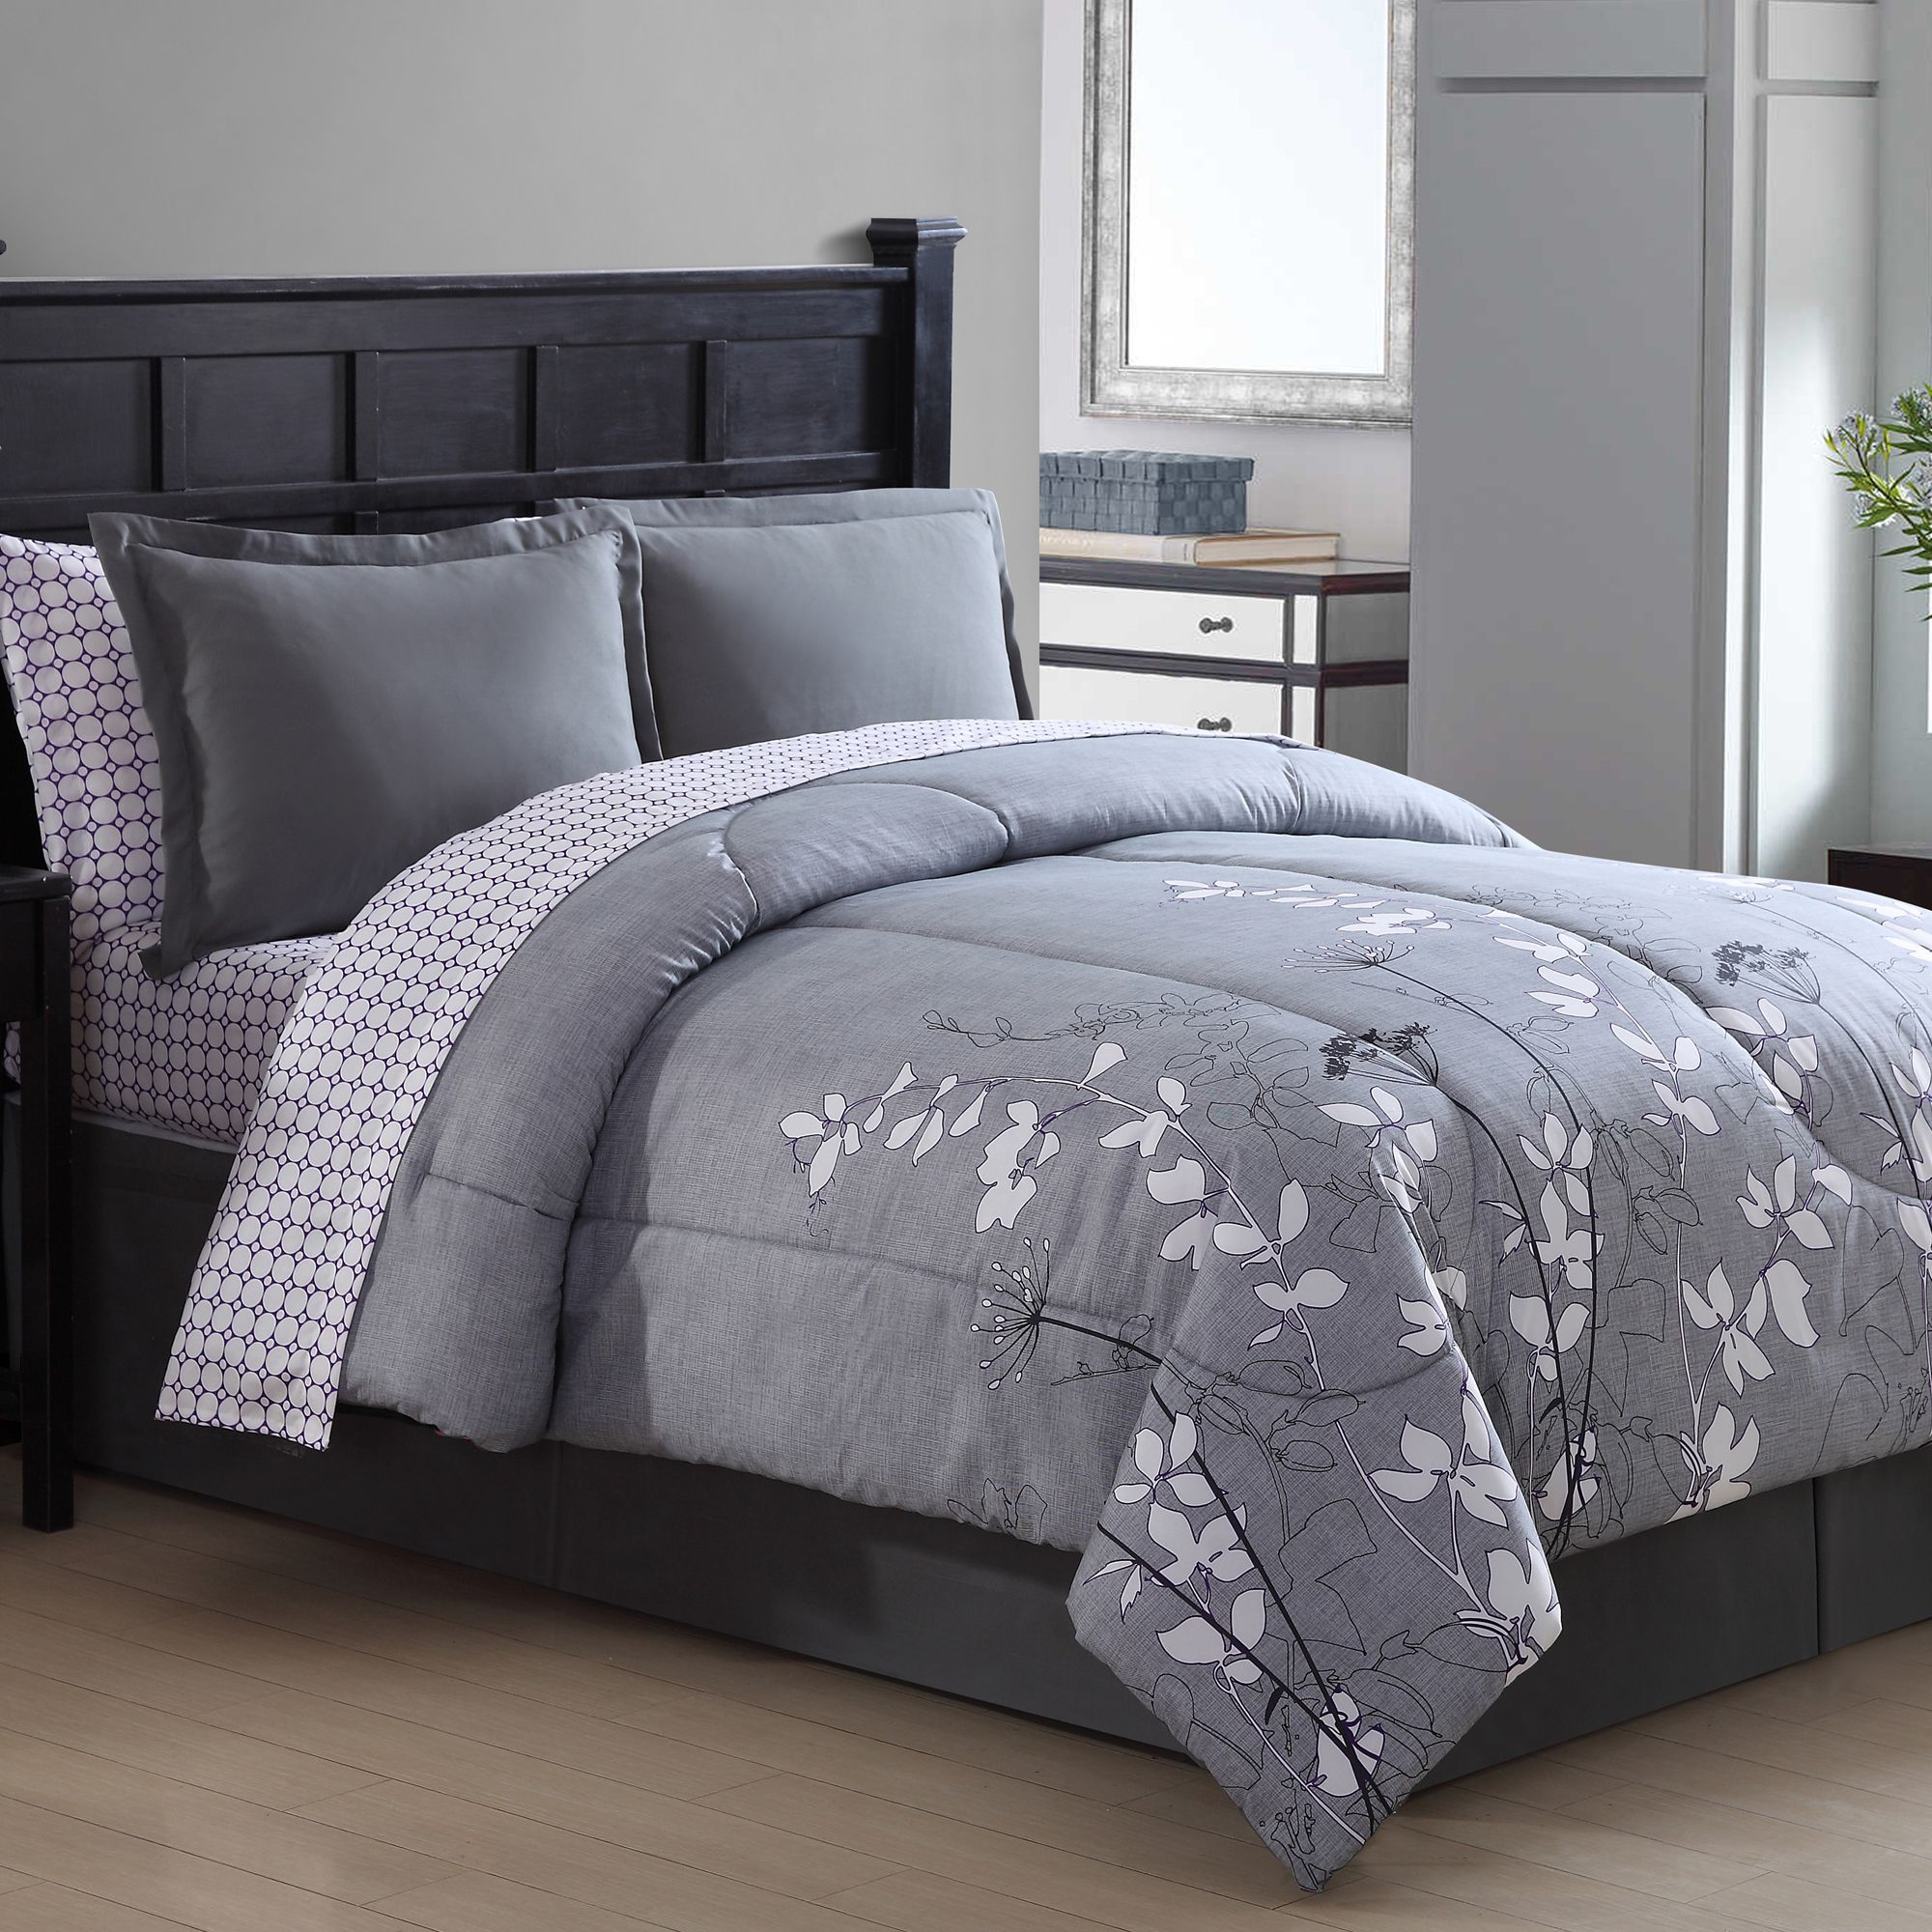 best quilt king floral full covers top cover super cream navy tropical white duvet uncategorized plum size blue winter and linen single bedding masculine purple mens twin queen superb